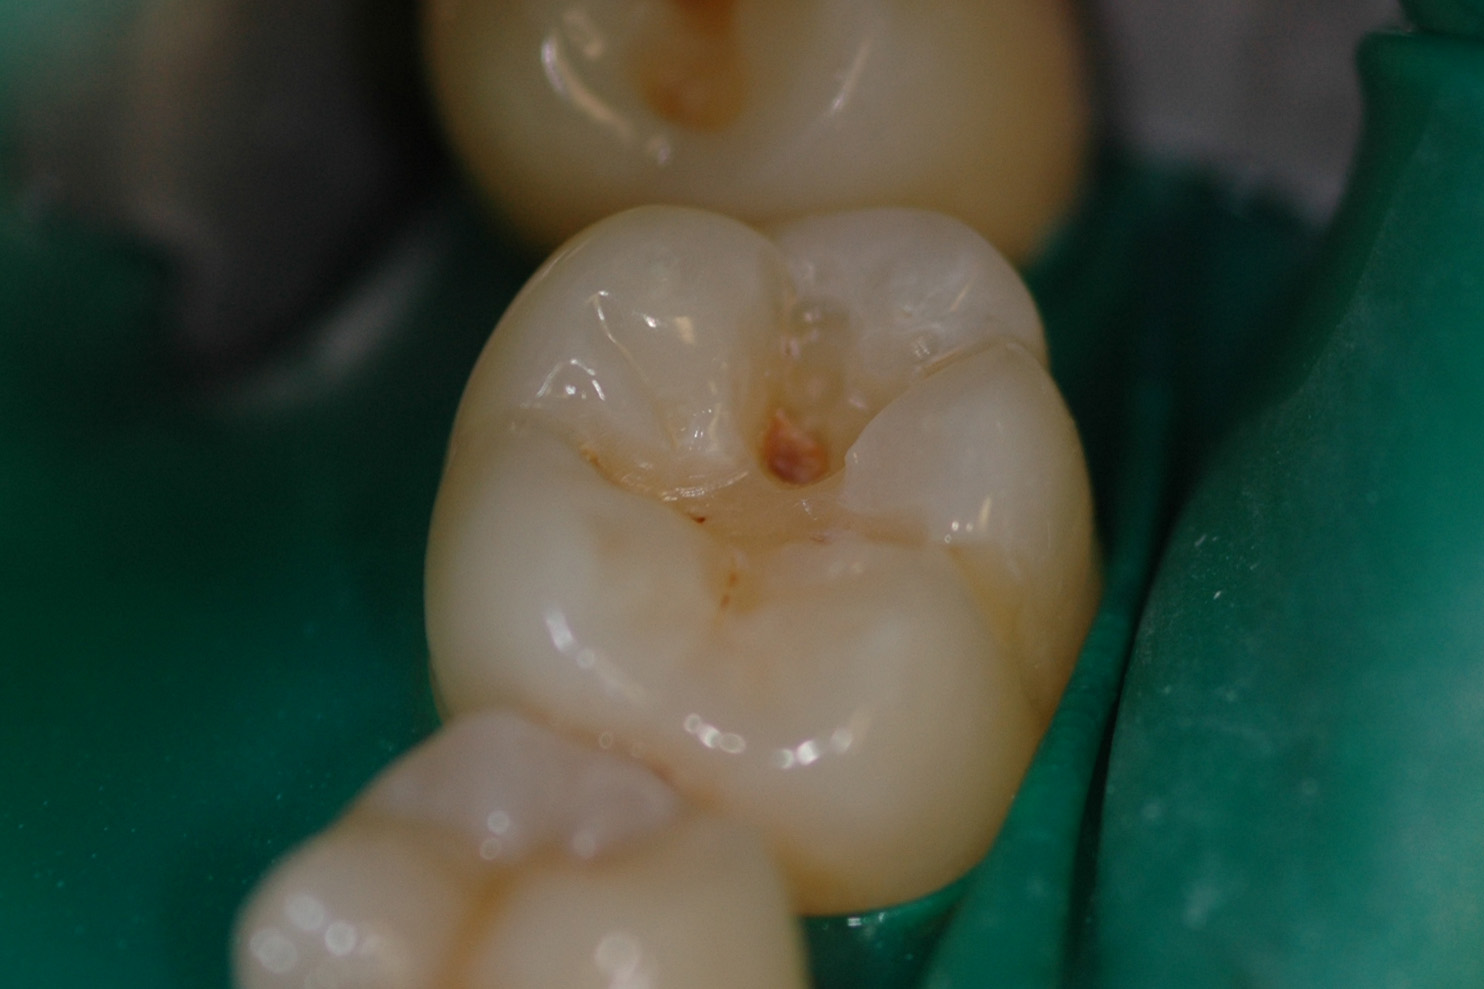 Sealants image 3